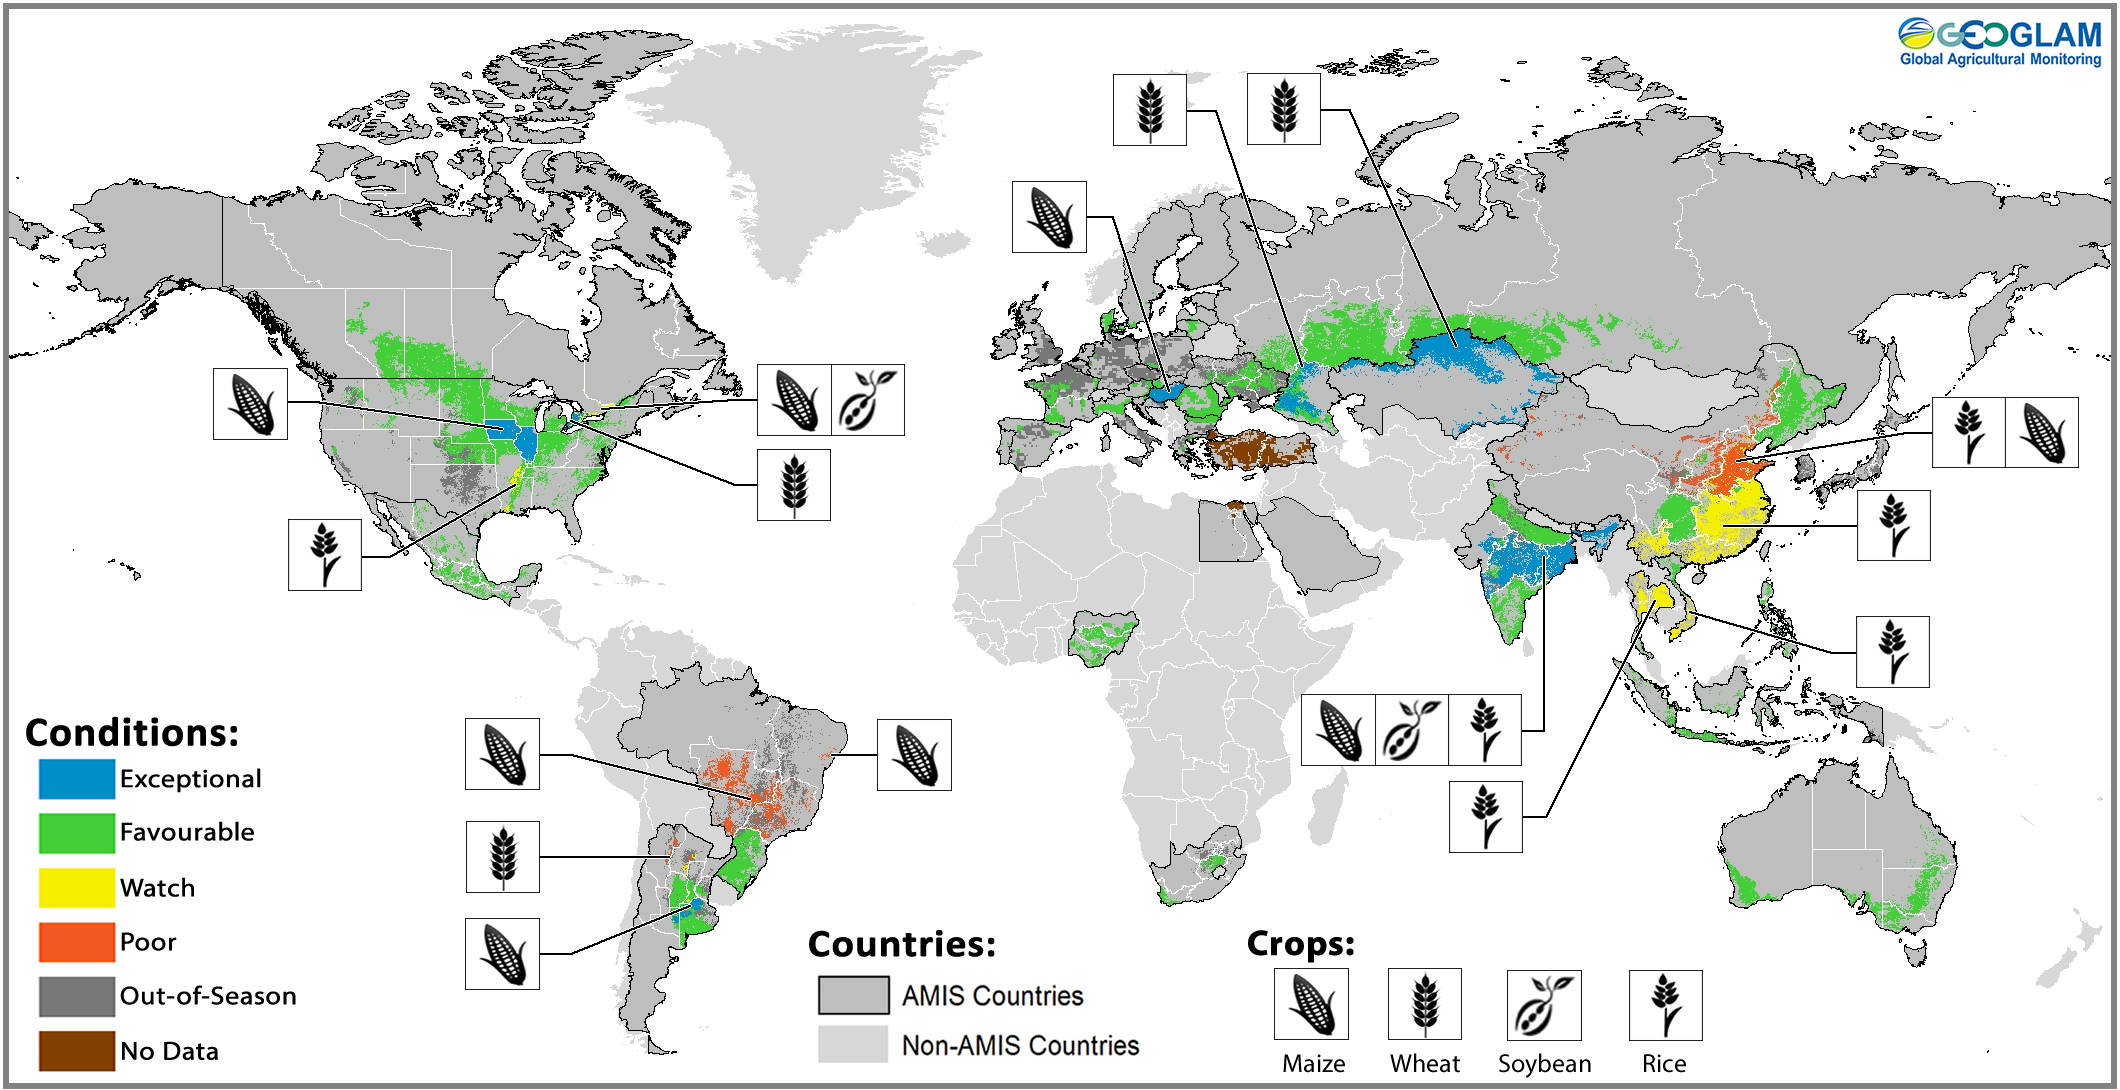 Figure 2: Crop condition map synthesizing information for all four AMIS crops as of August 28th 2016. Crop conditions over the main growing areas for wheat, maize, rice, and soybean are based on a combination of national and regional crop analyst inputs along with earth observation data. Crops that are in other than favourable conditions are displayed on the map with their crop symbol.